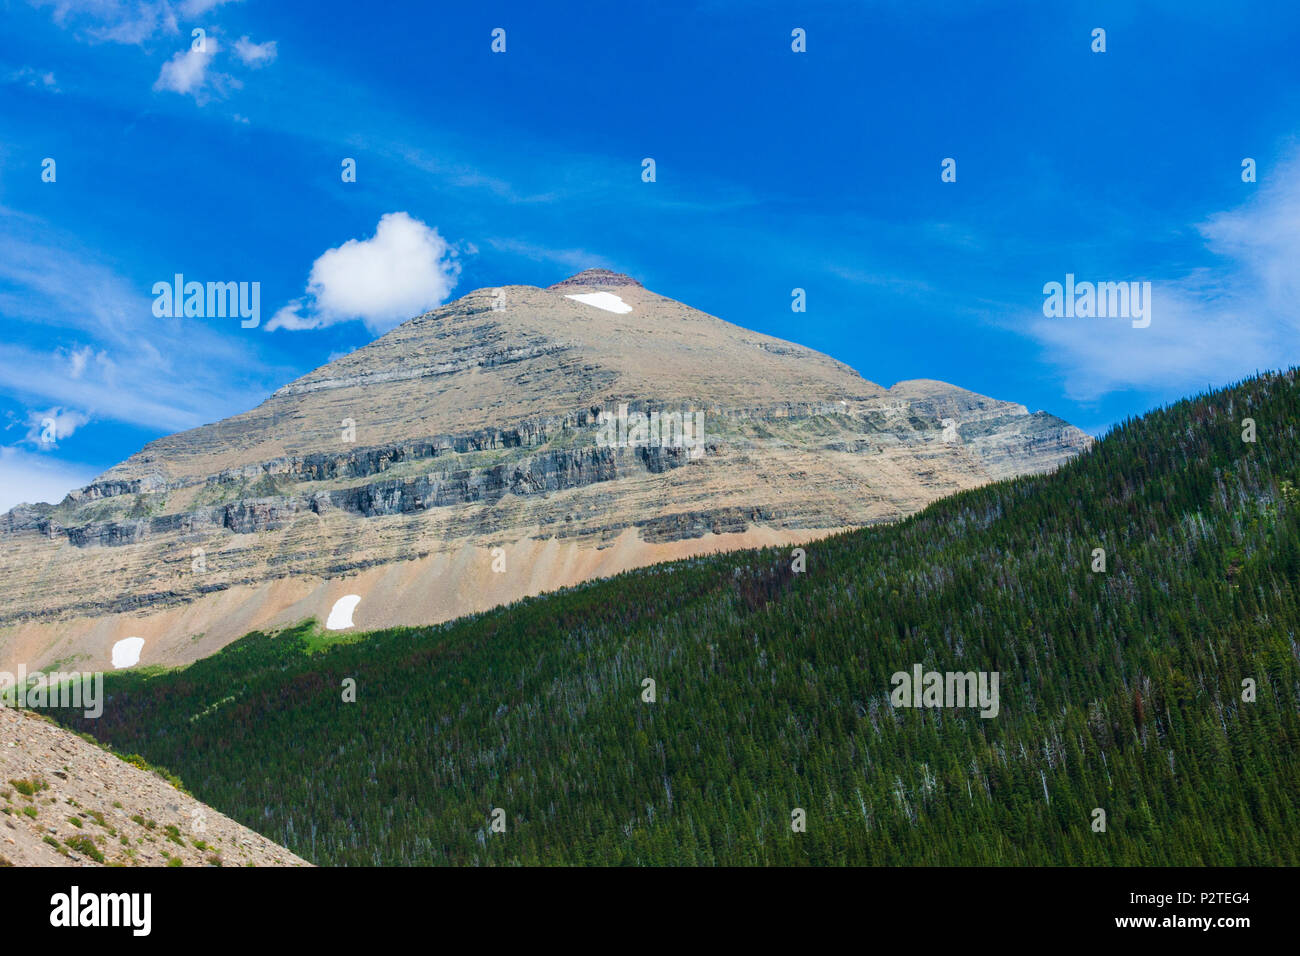 Mount Siyeh in Glacier National Park in Montana. - Stock Image